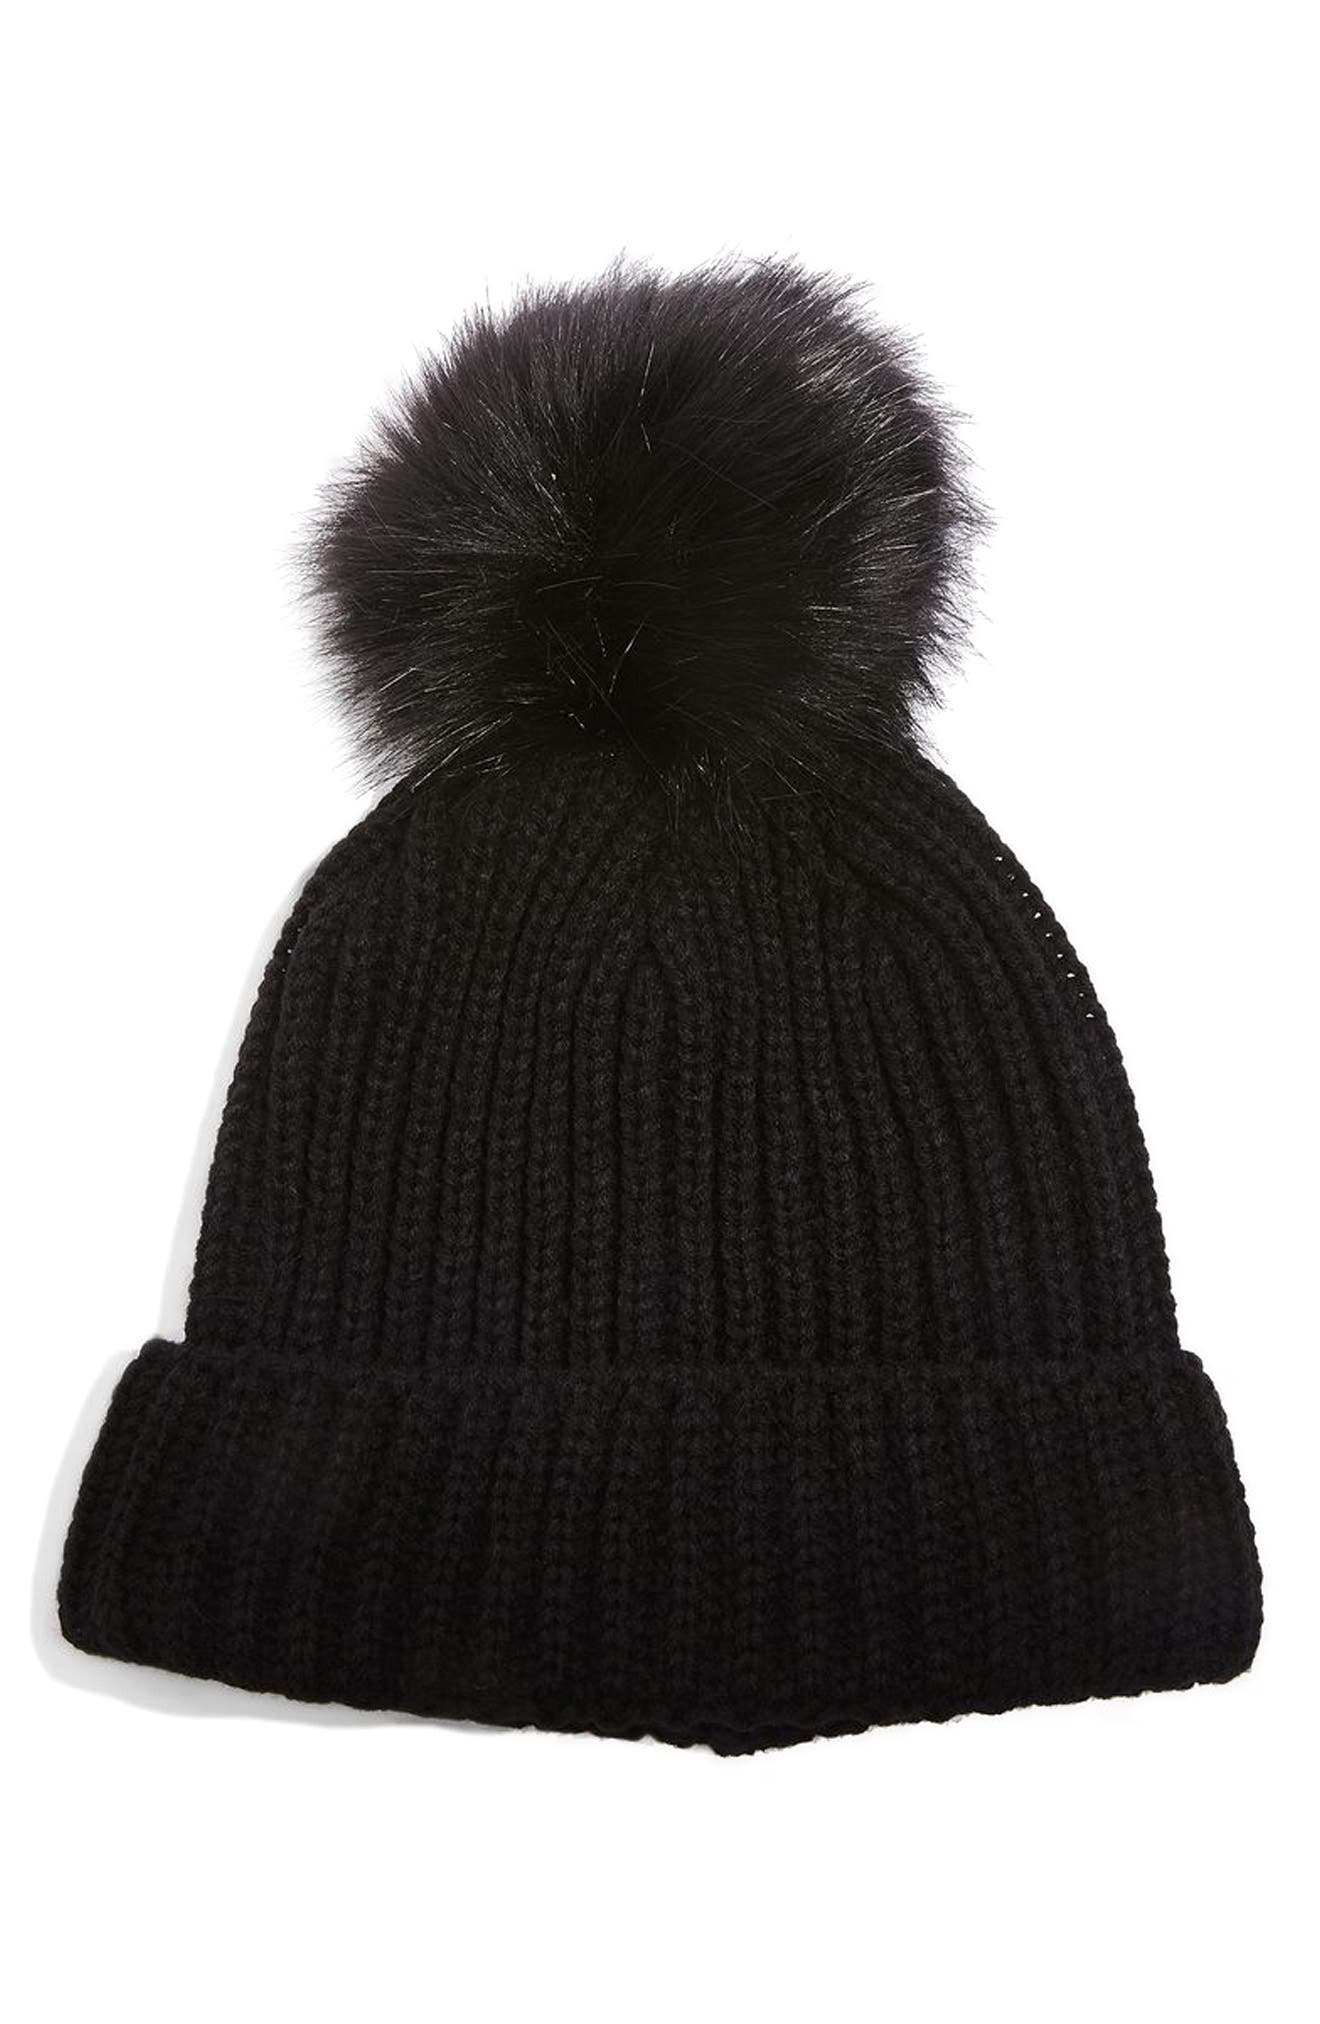 Faux Fur Pompom Beanie,                             Main thumbnail 1, color,                             Black